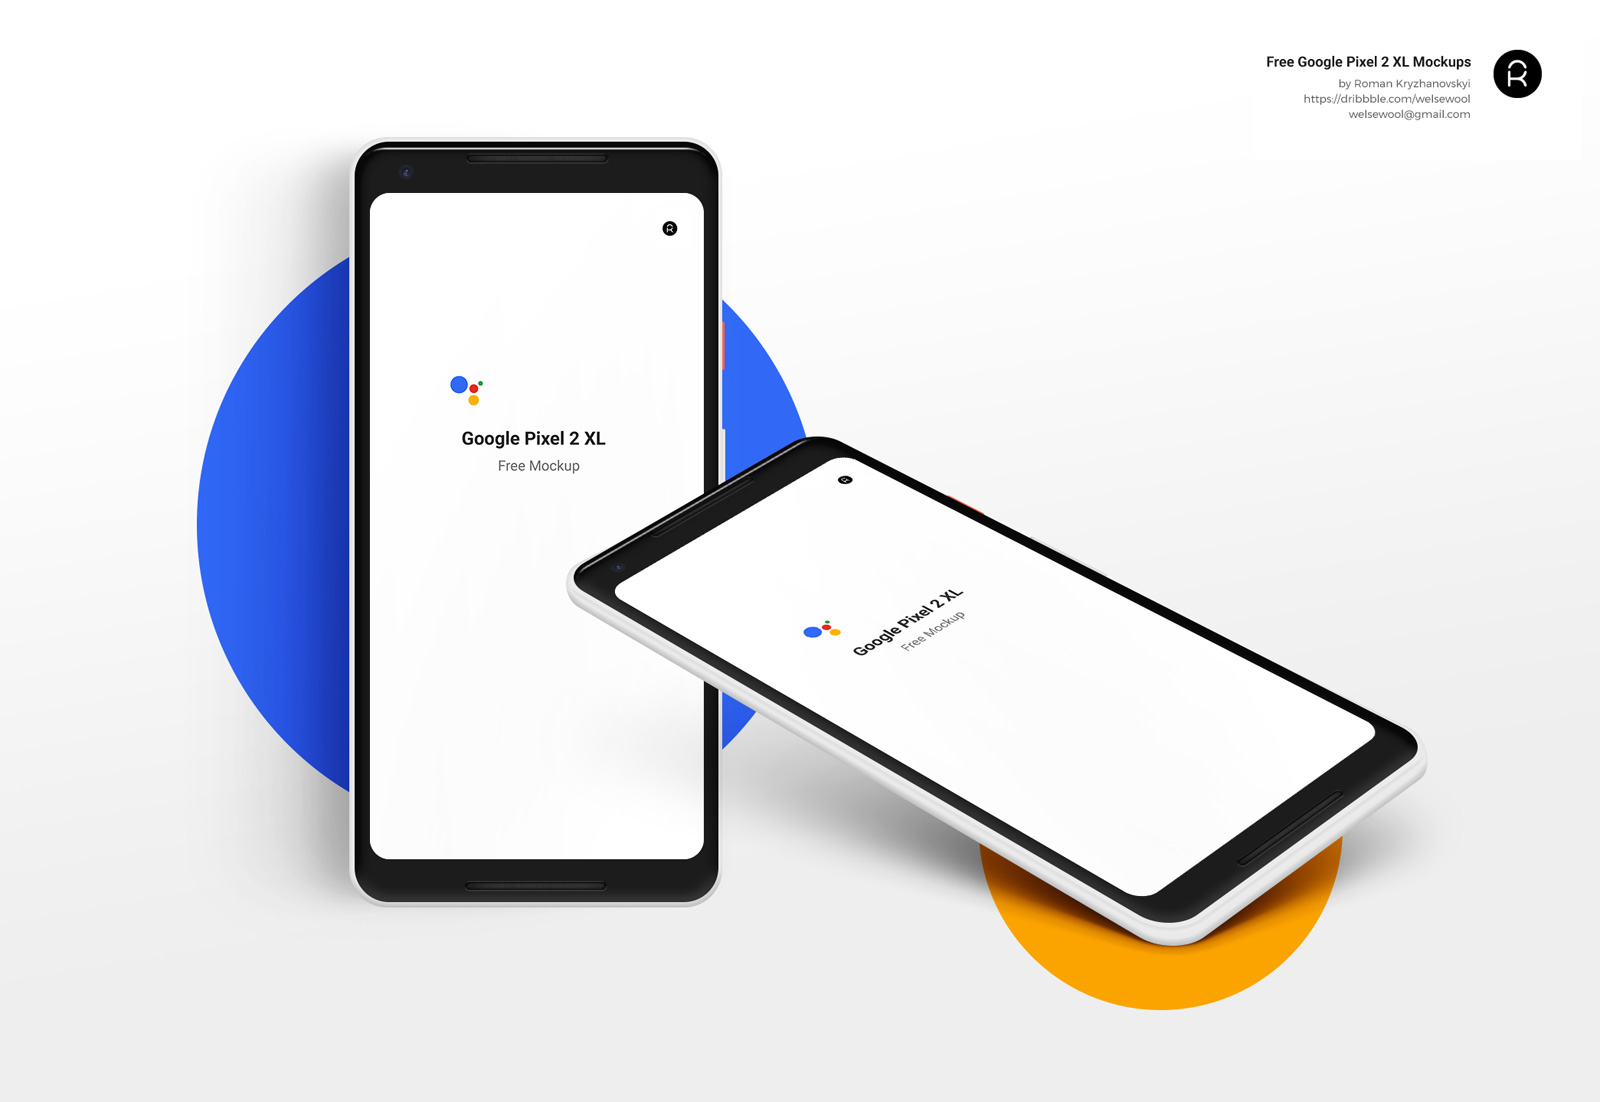 android | Free Mockups, Best Free PSD Mockups - ApeMockups